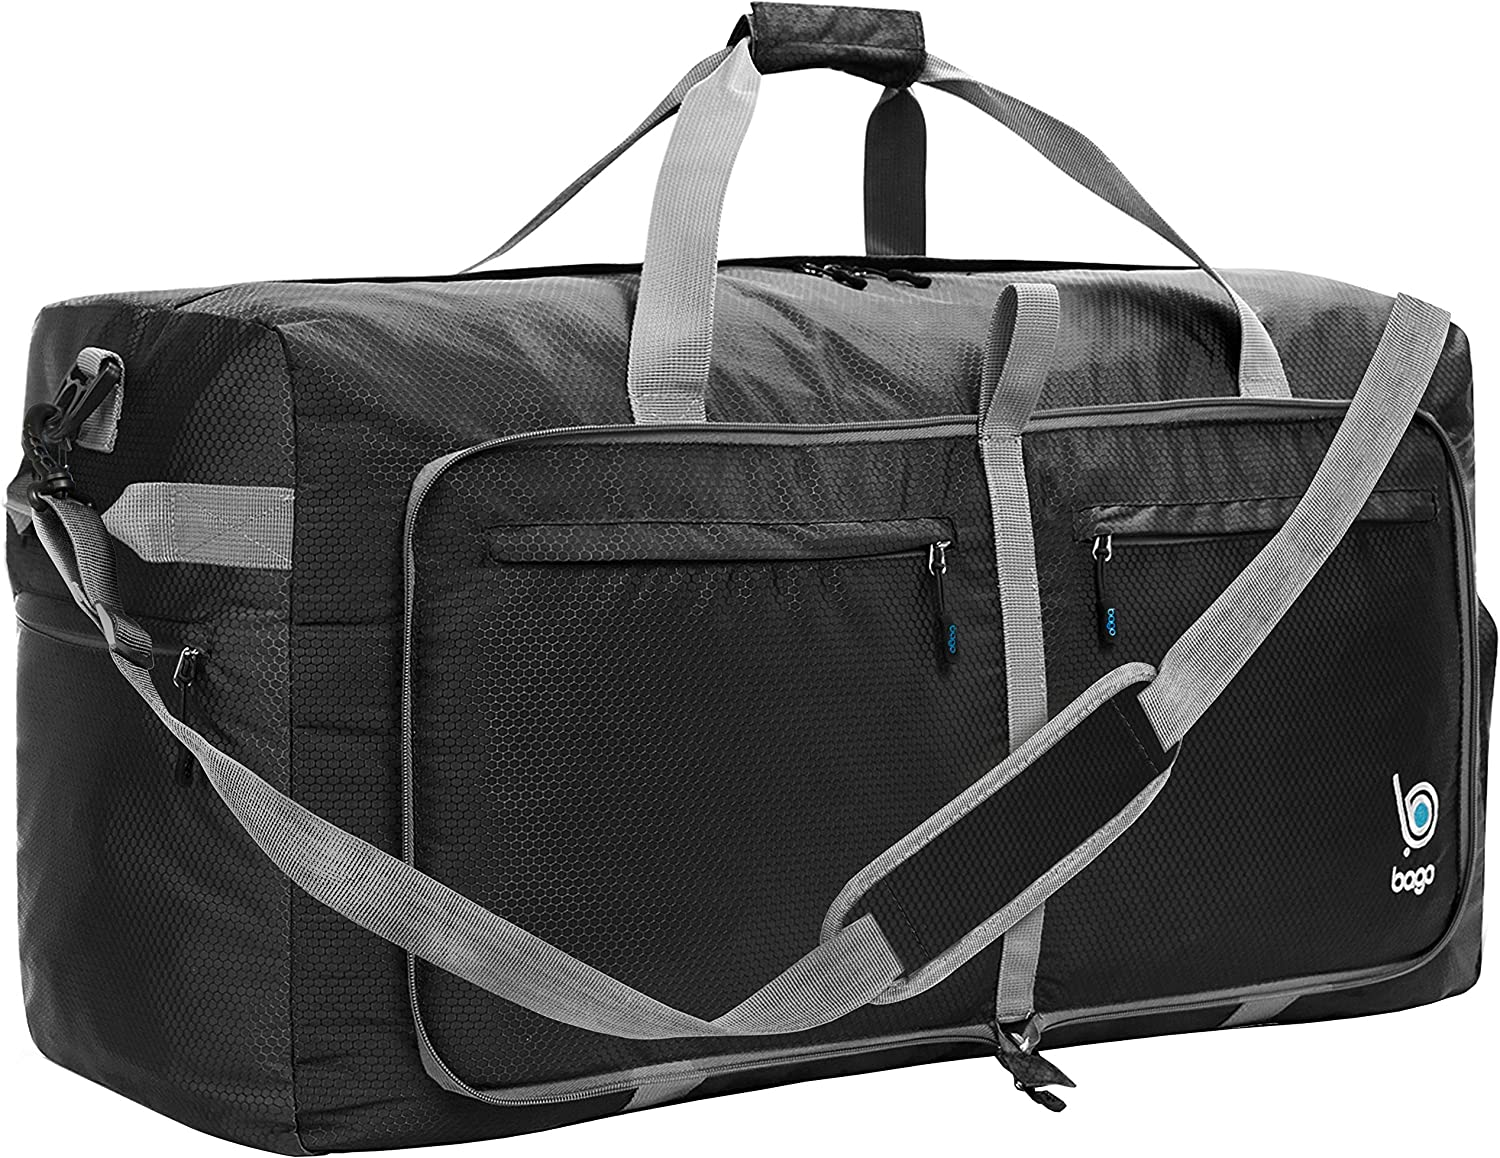 Zippered Compartments Foam And Dog Duffel Style Carry On Sports Travel Bag with Shoulder Strap